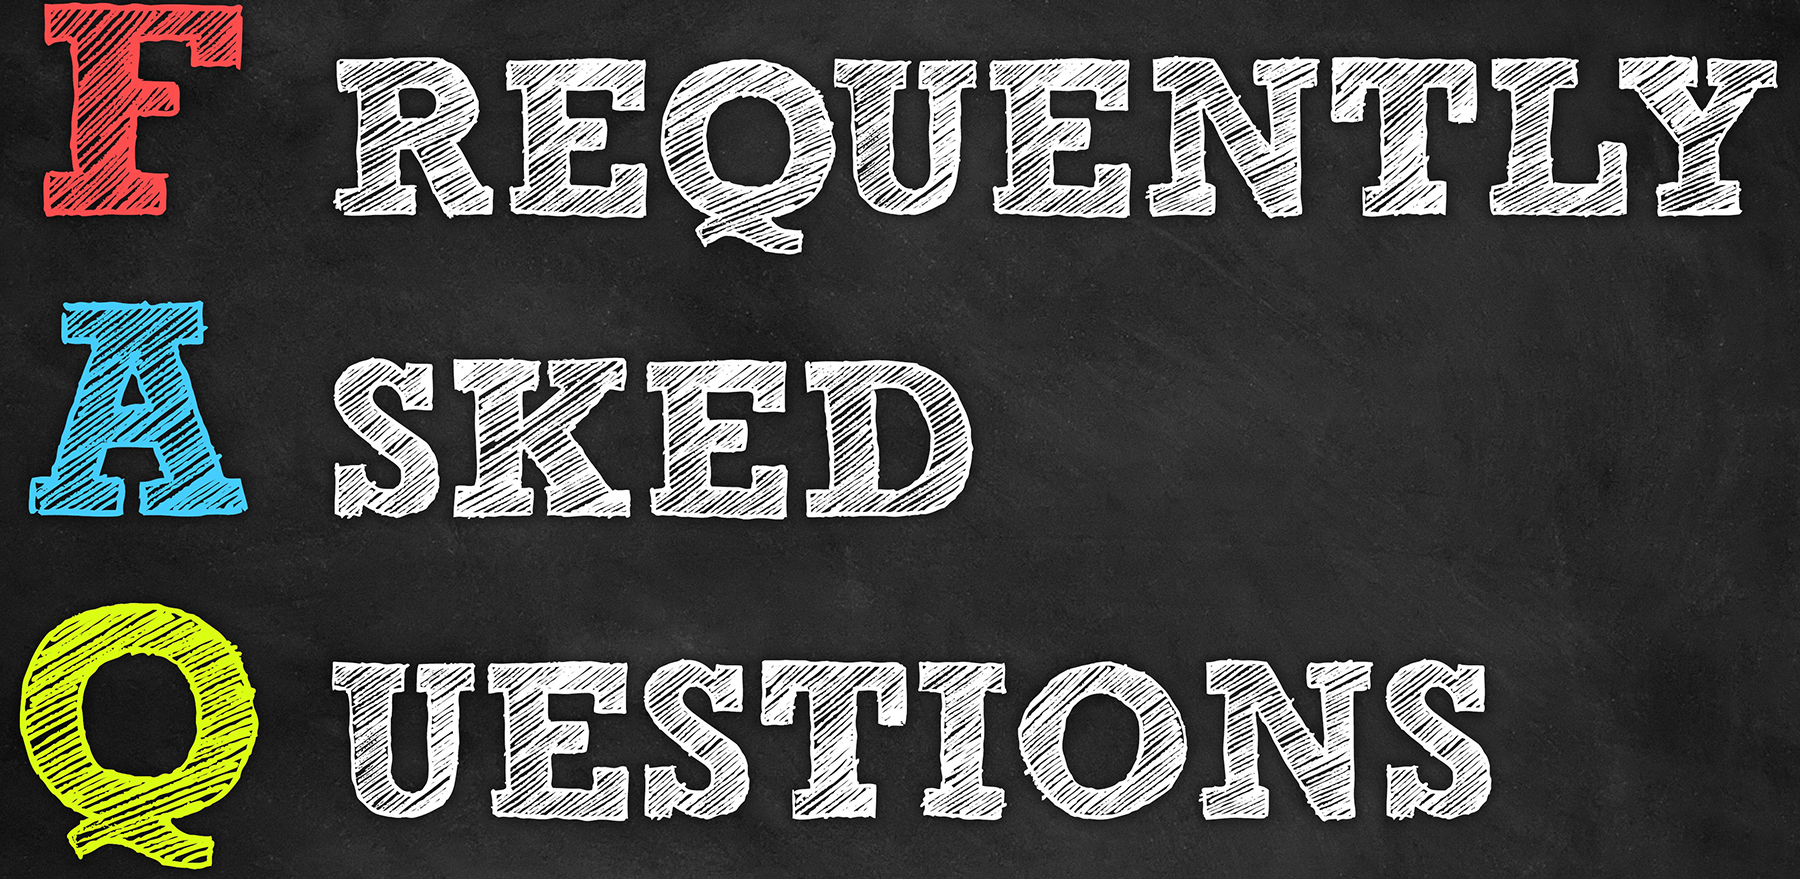 Frequently Asked Questions written on chalkboard